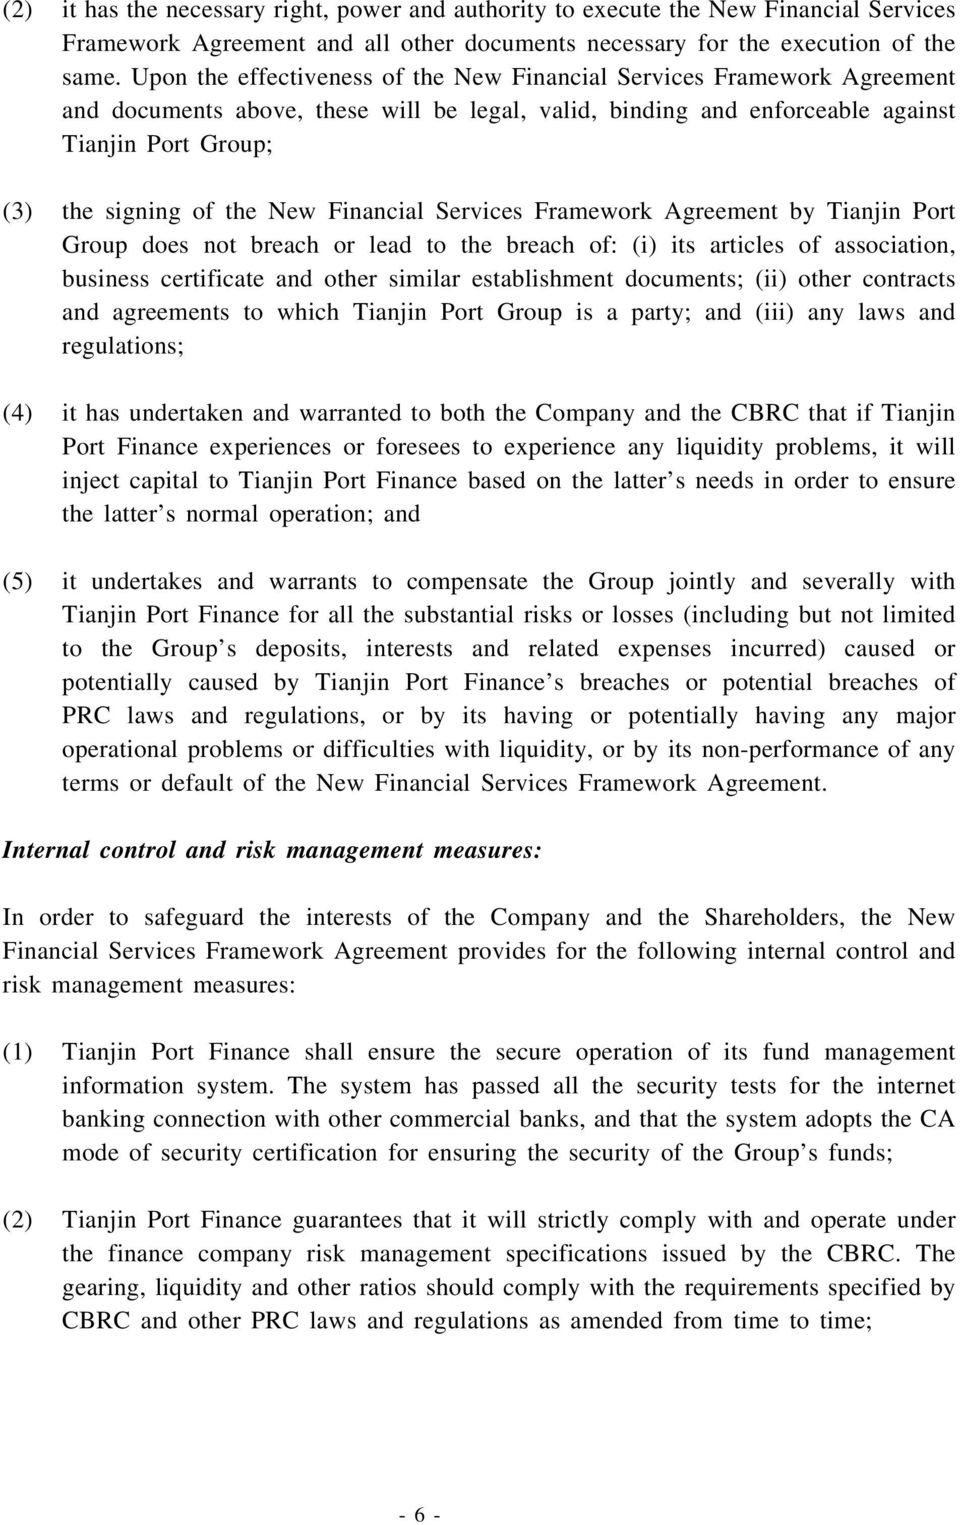 New Financial Services Framework Agreement by Tianjin Port Group does not breach or lead to the breach of: (i) its articles of association, business certificate and other similar establishment